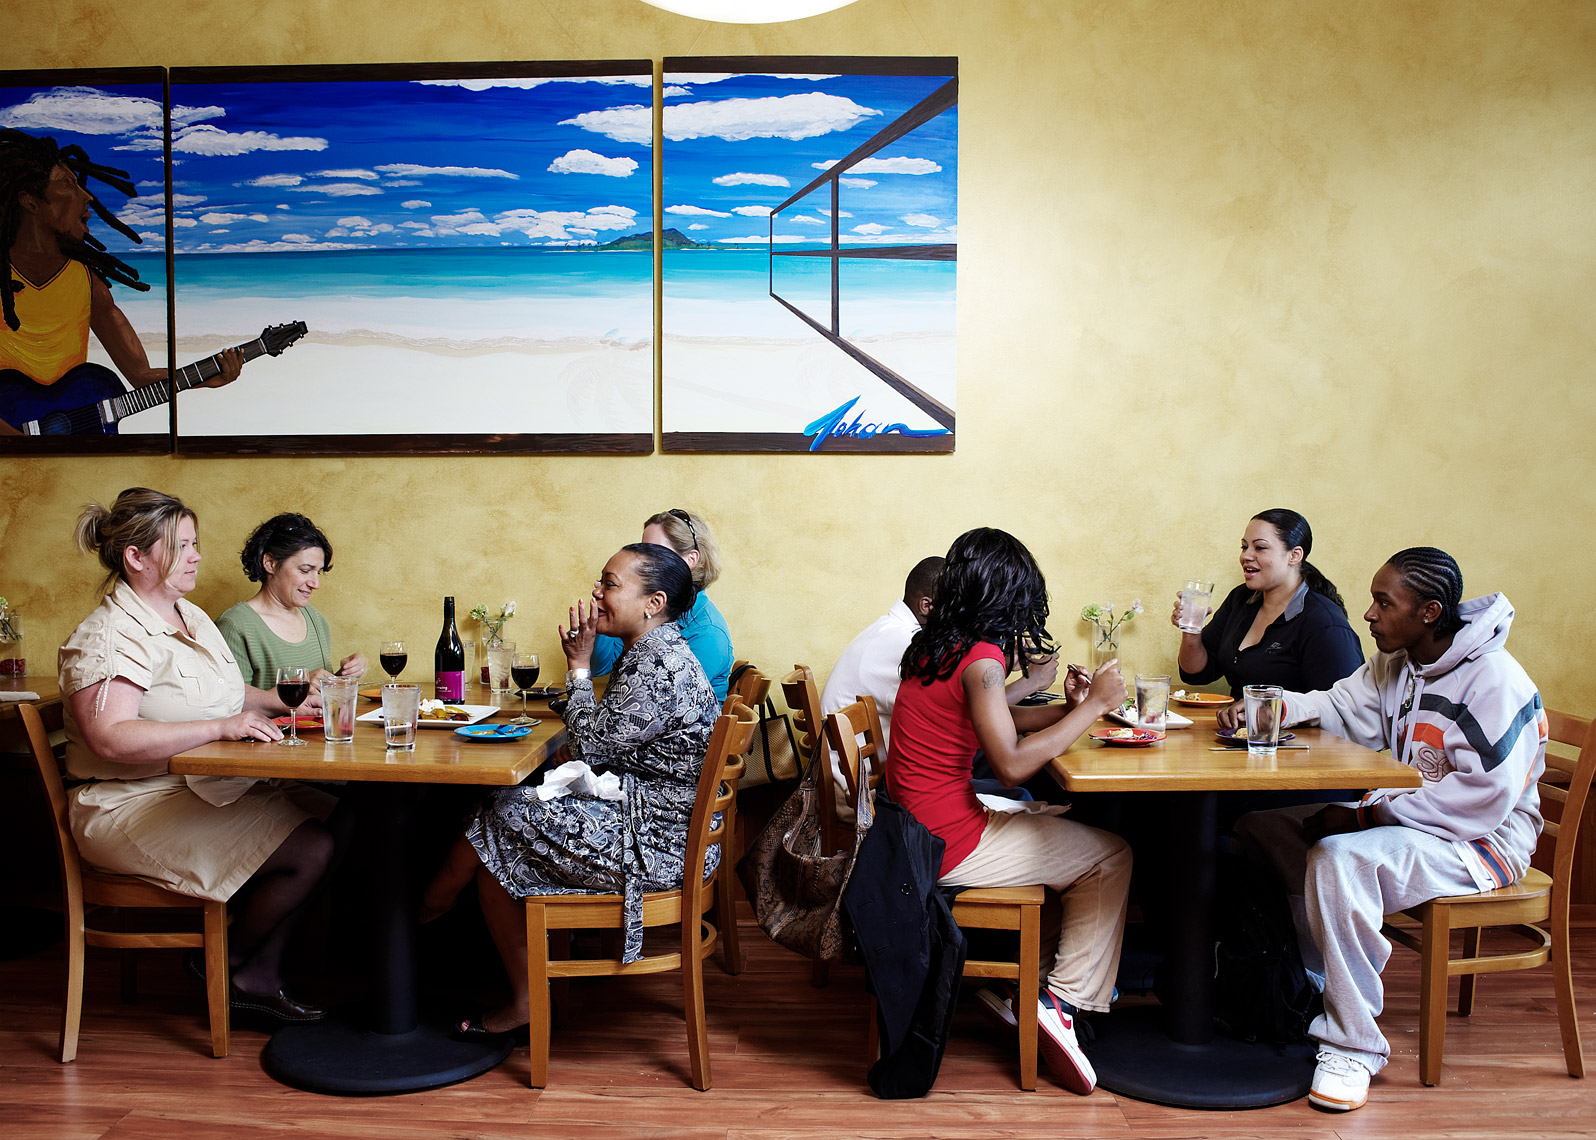 Diner enjoy a meal at Island Soul as captured by  Seattle Magazine photographer Amos Morgan